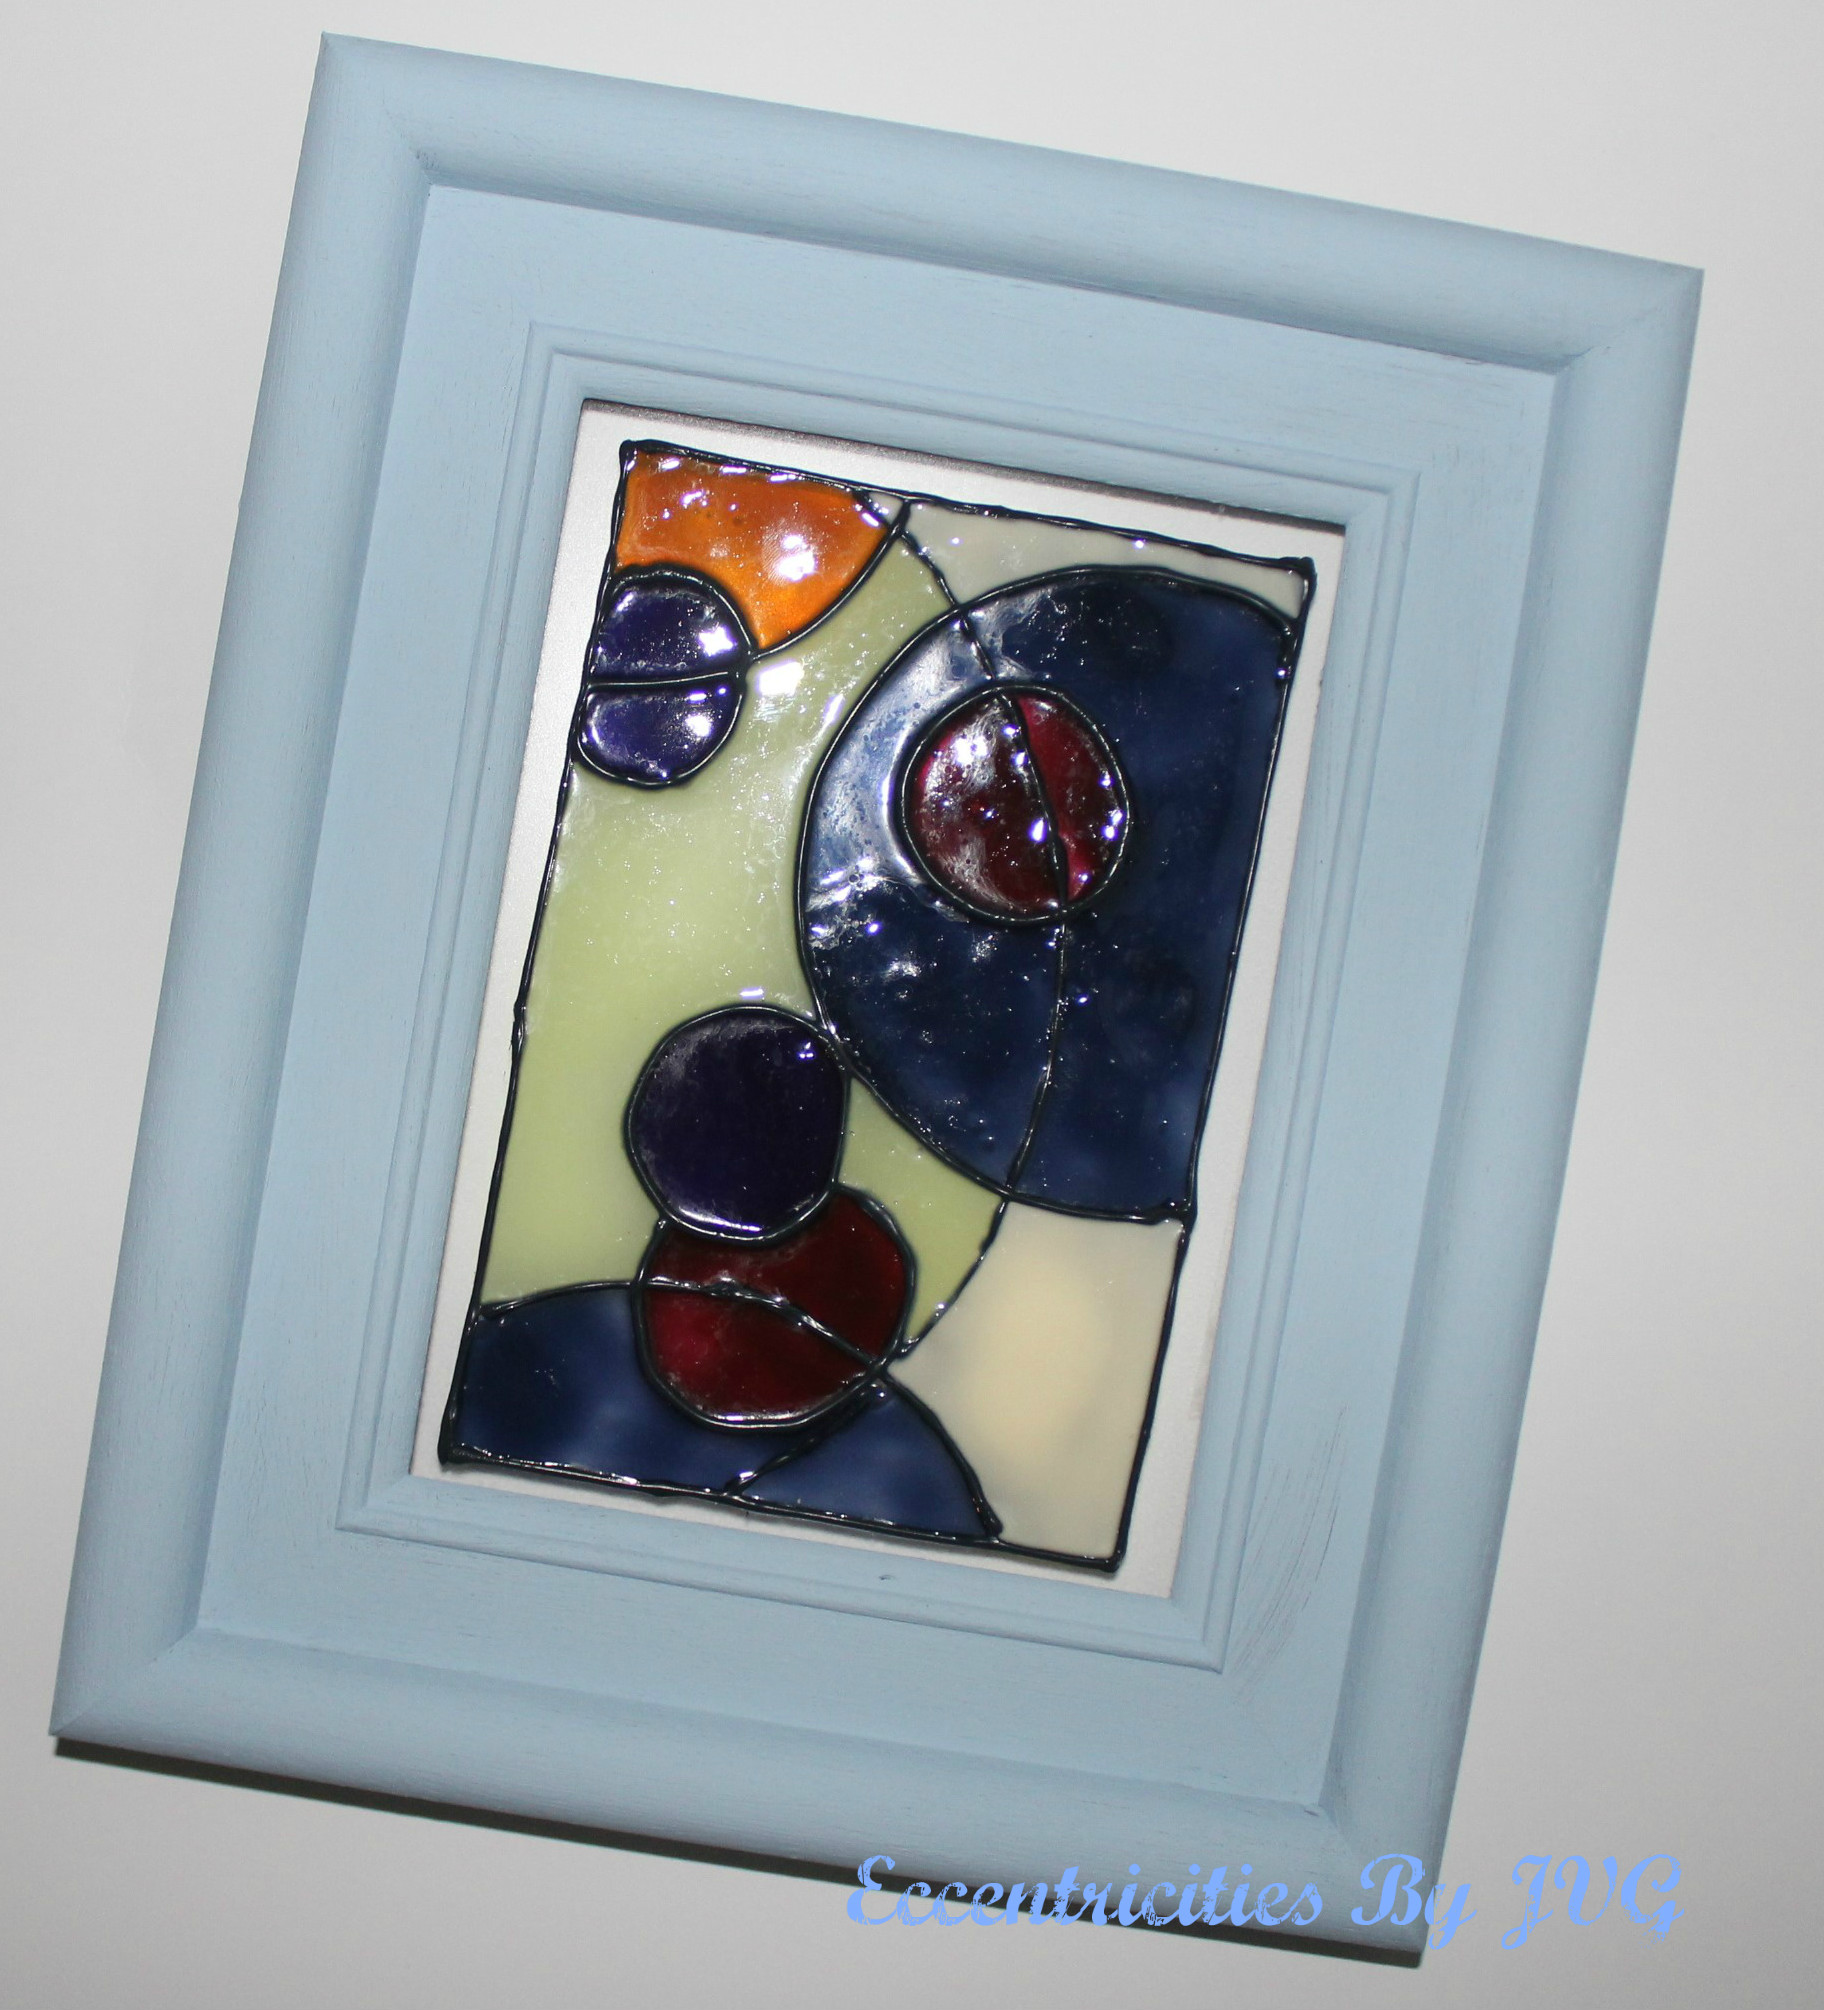 stained glass art for small frame with abstract design